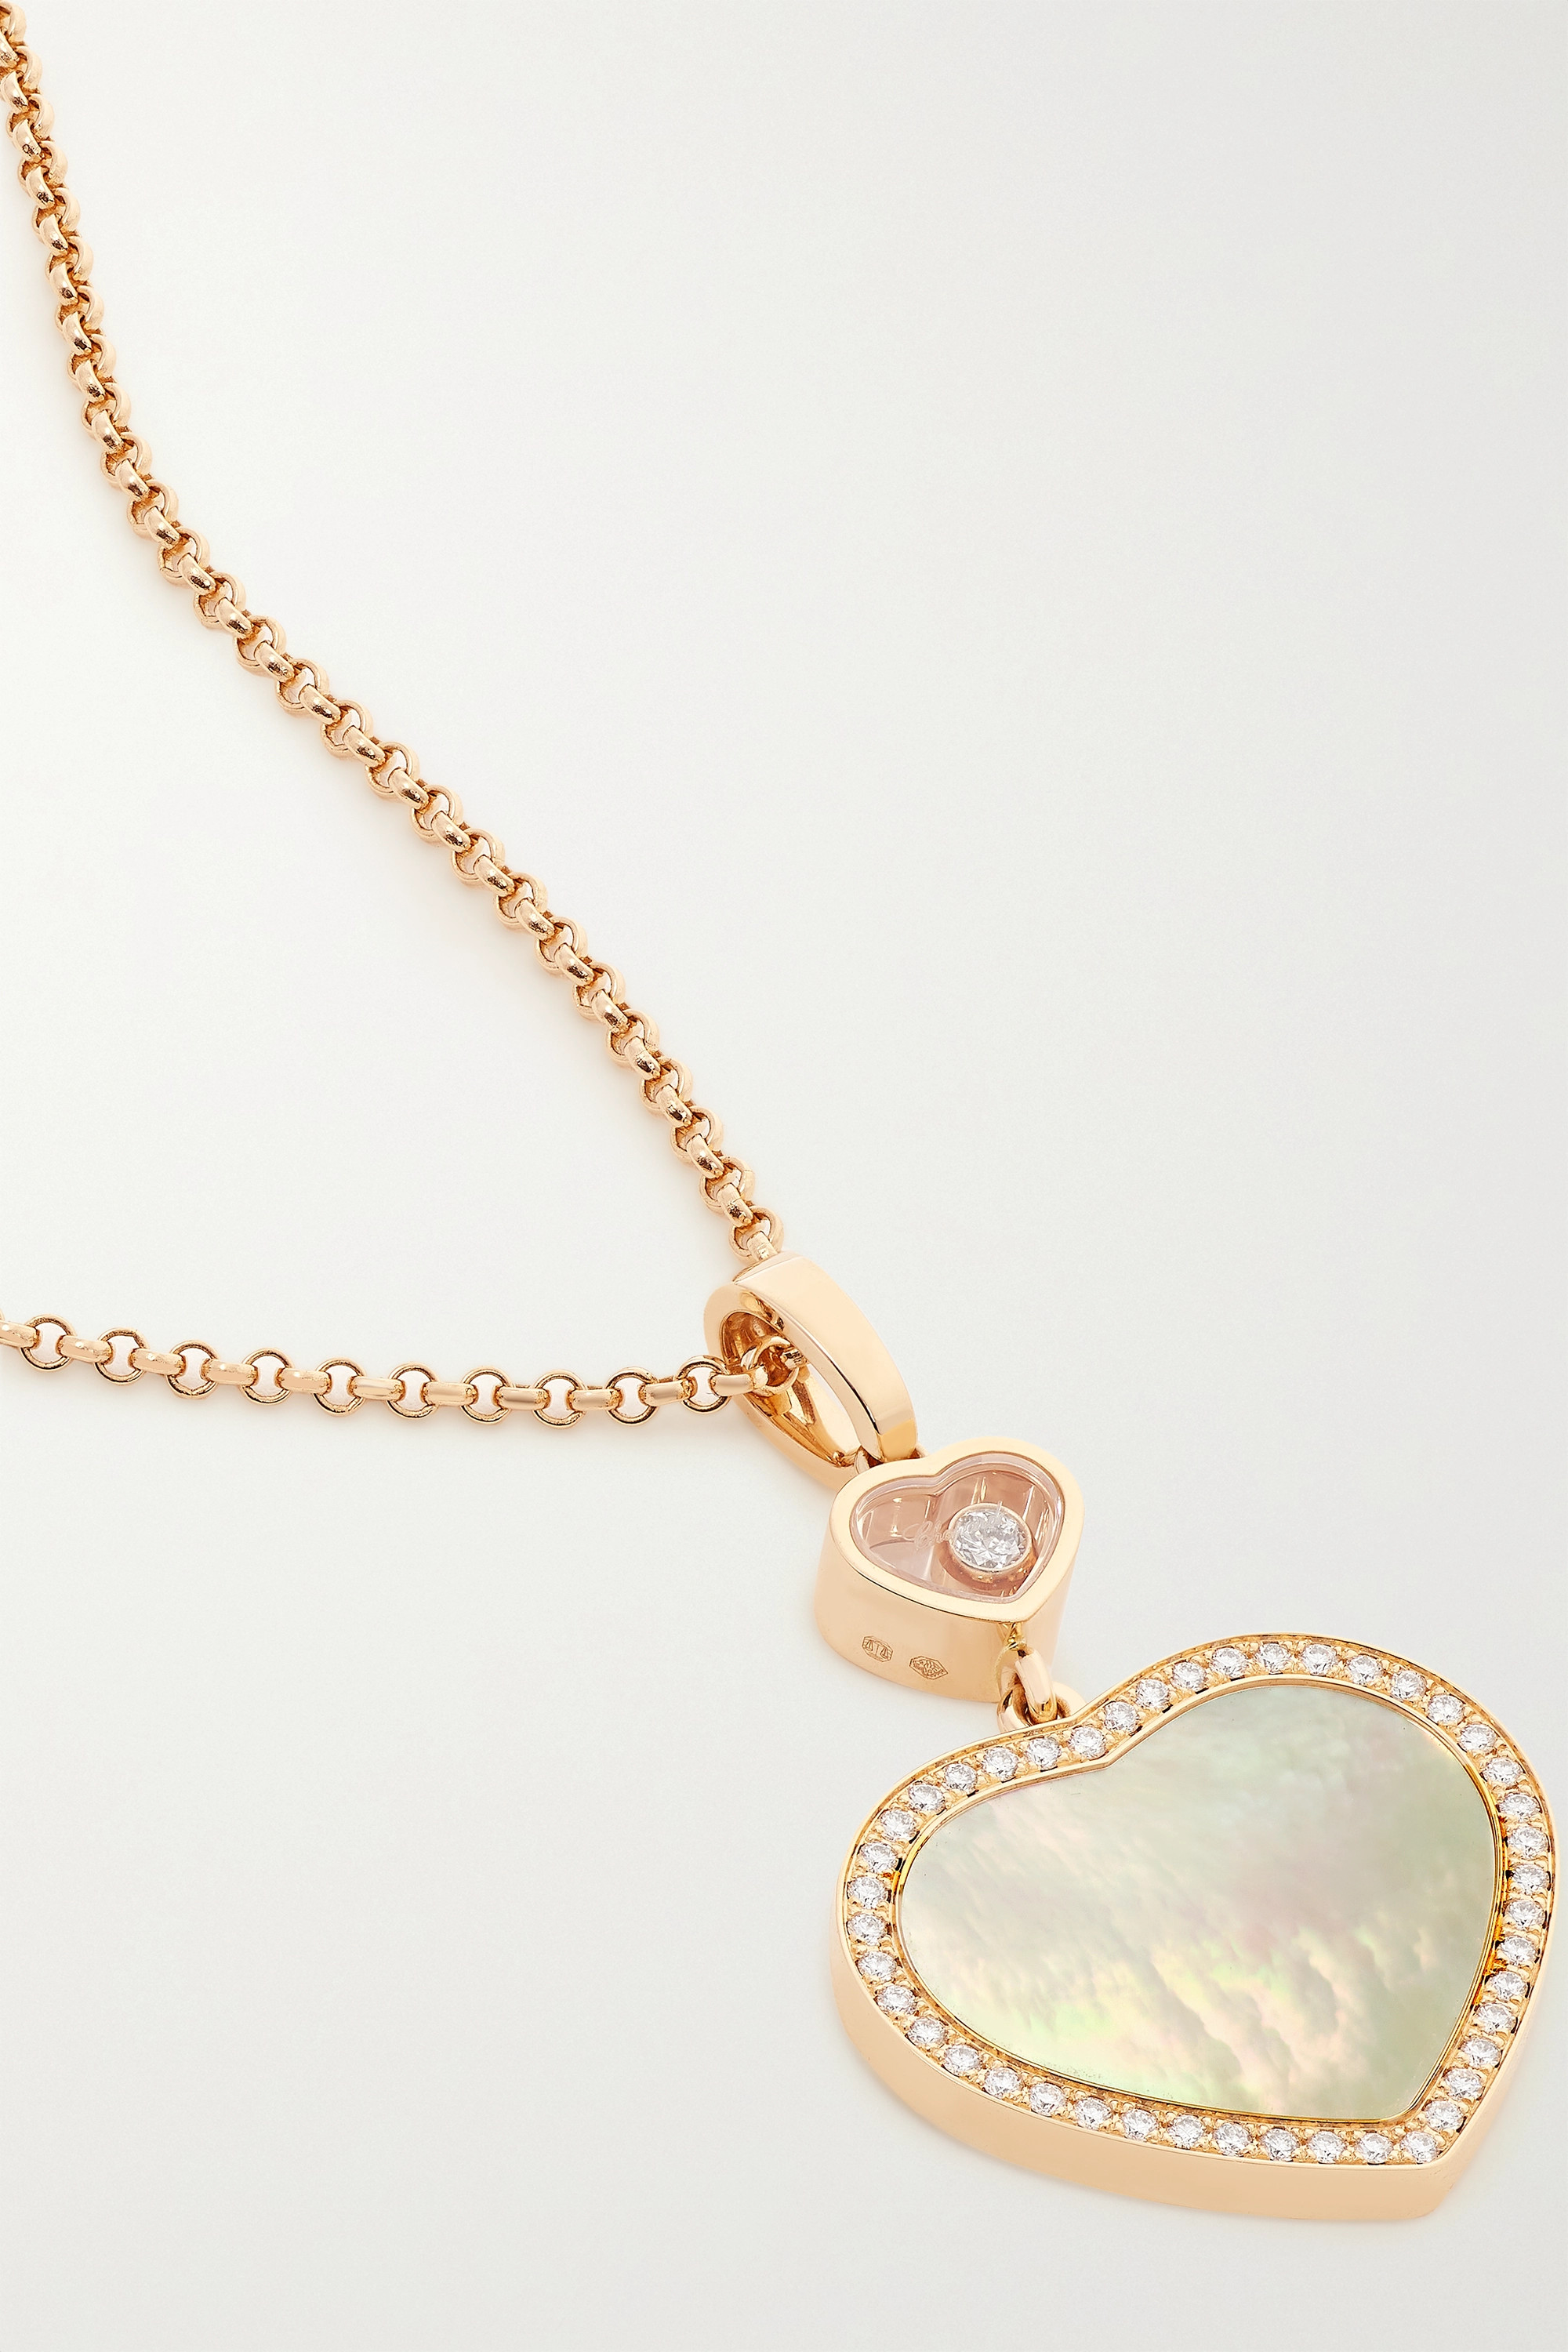 Chopard Happy Hearts 18-karat rose gold, mother-of-pearl and diamond necklace